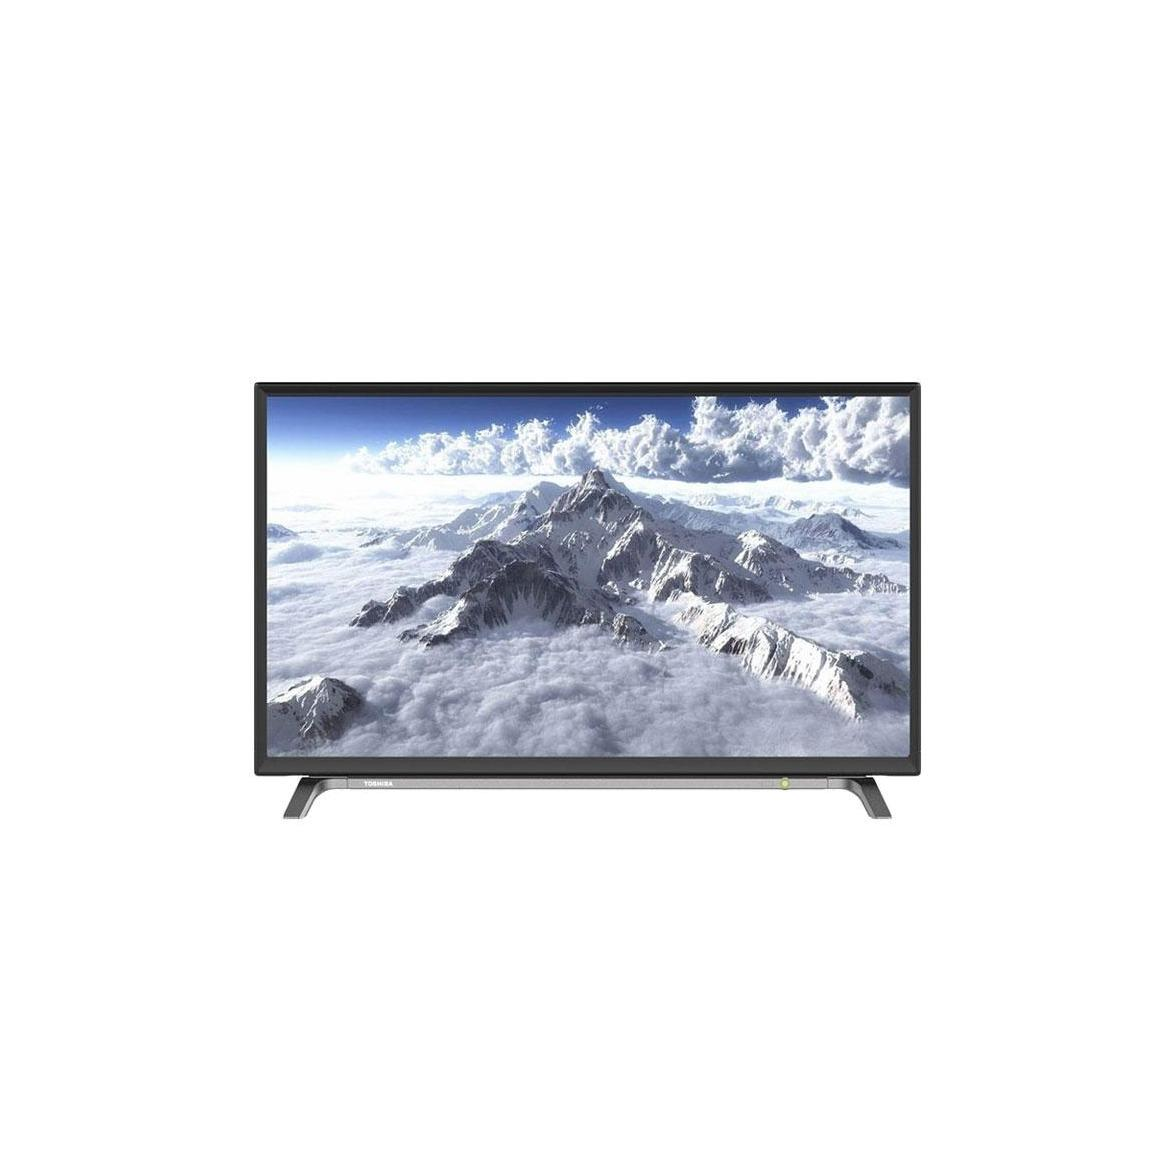 Toshiba 40L3650 LED TV [40 Inch]